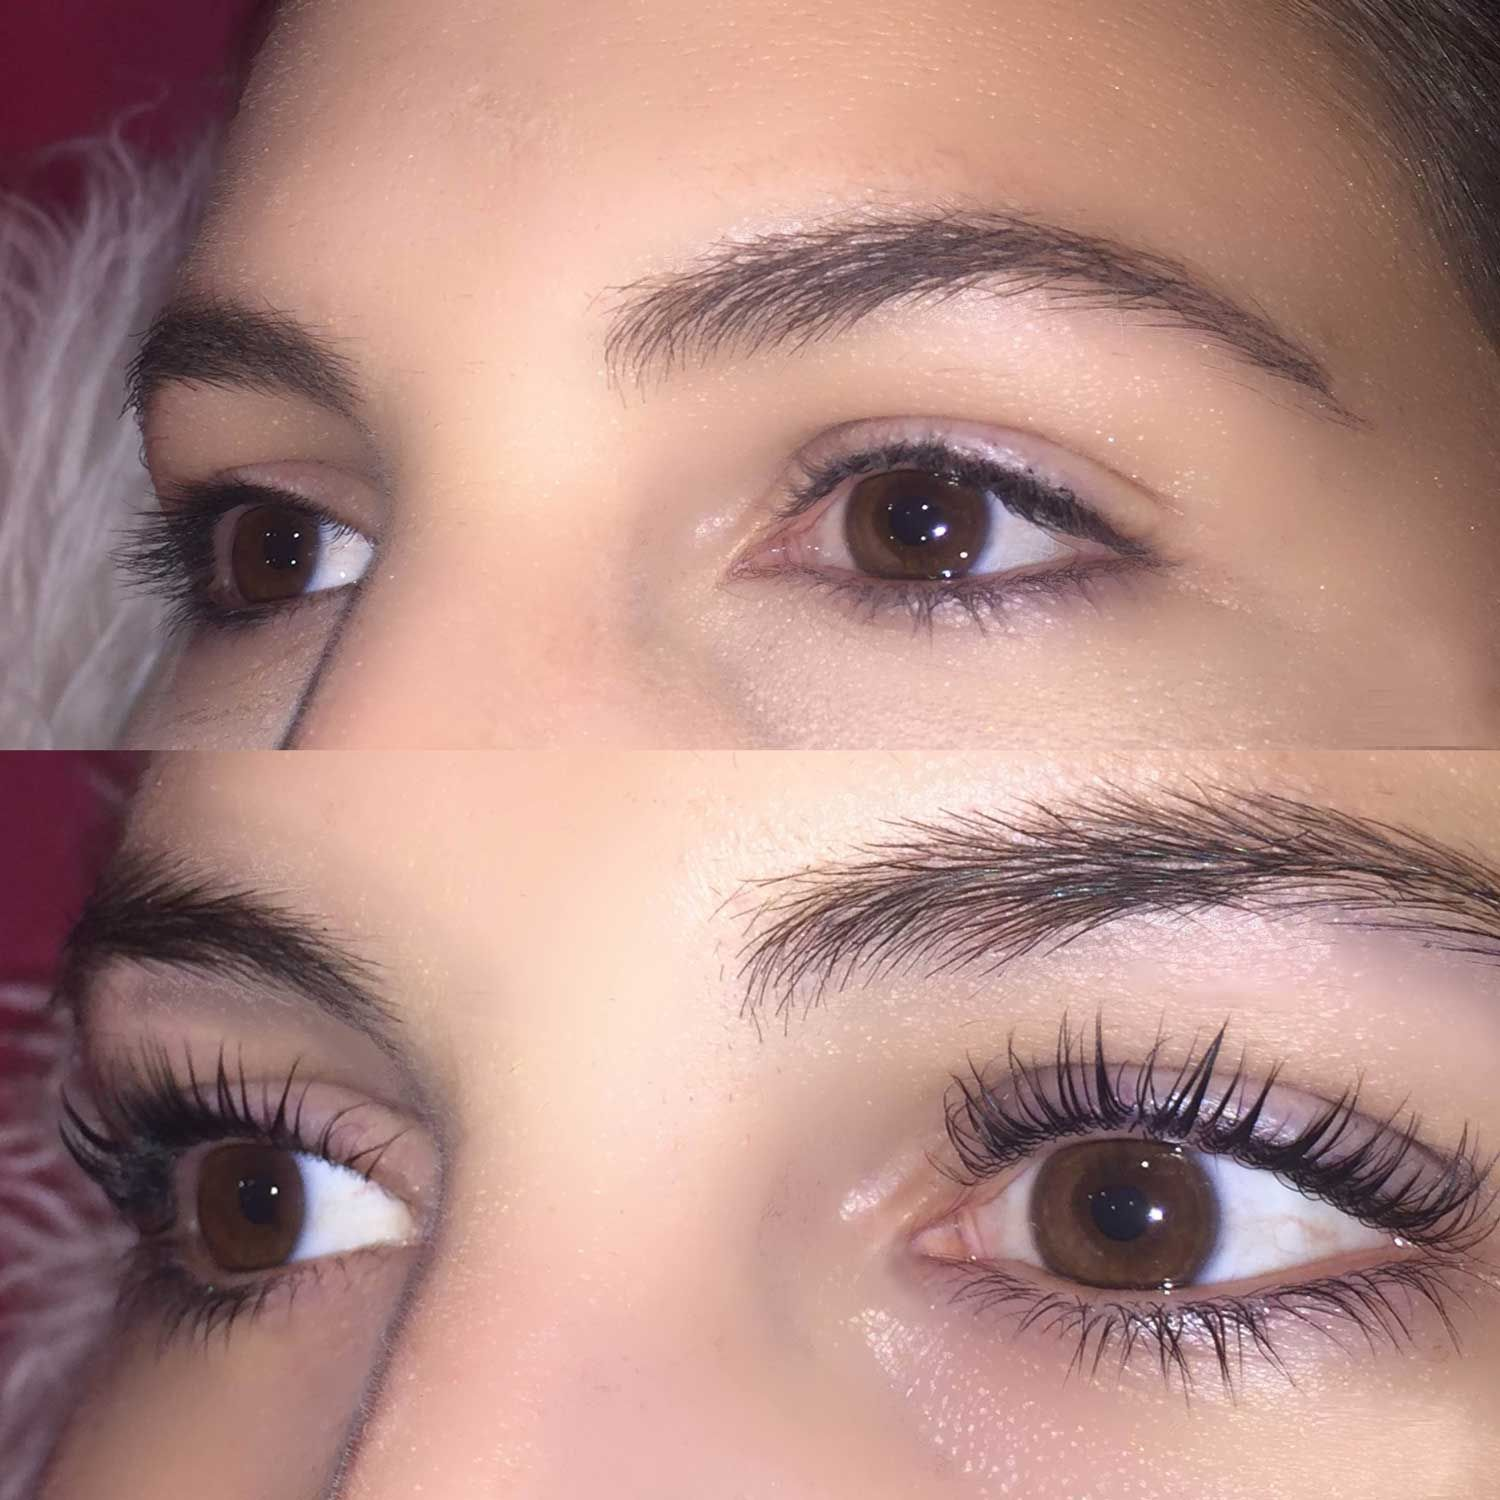 I Got A Lash Lift And My Eyelashes Have Never Looked Better My